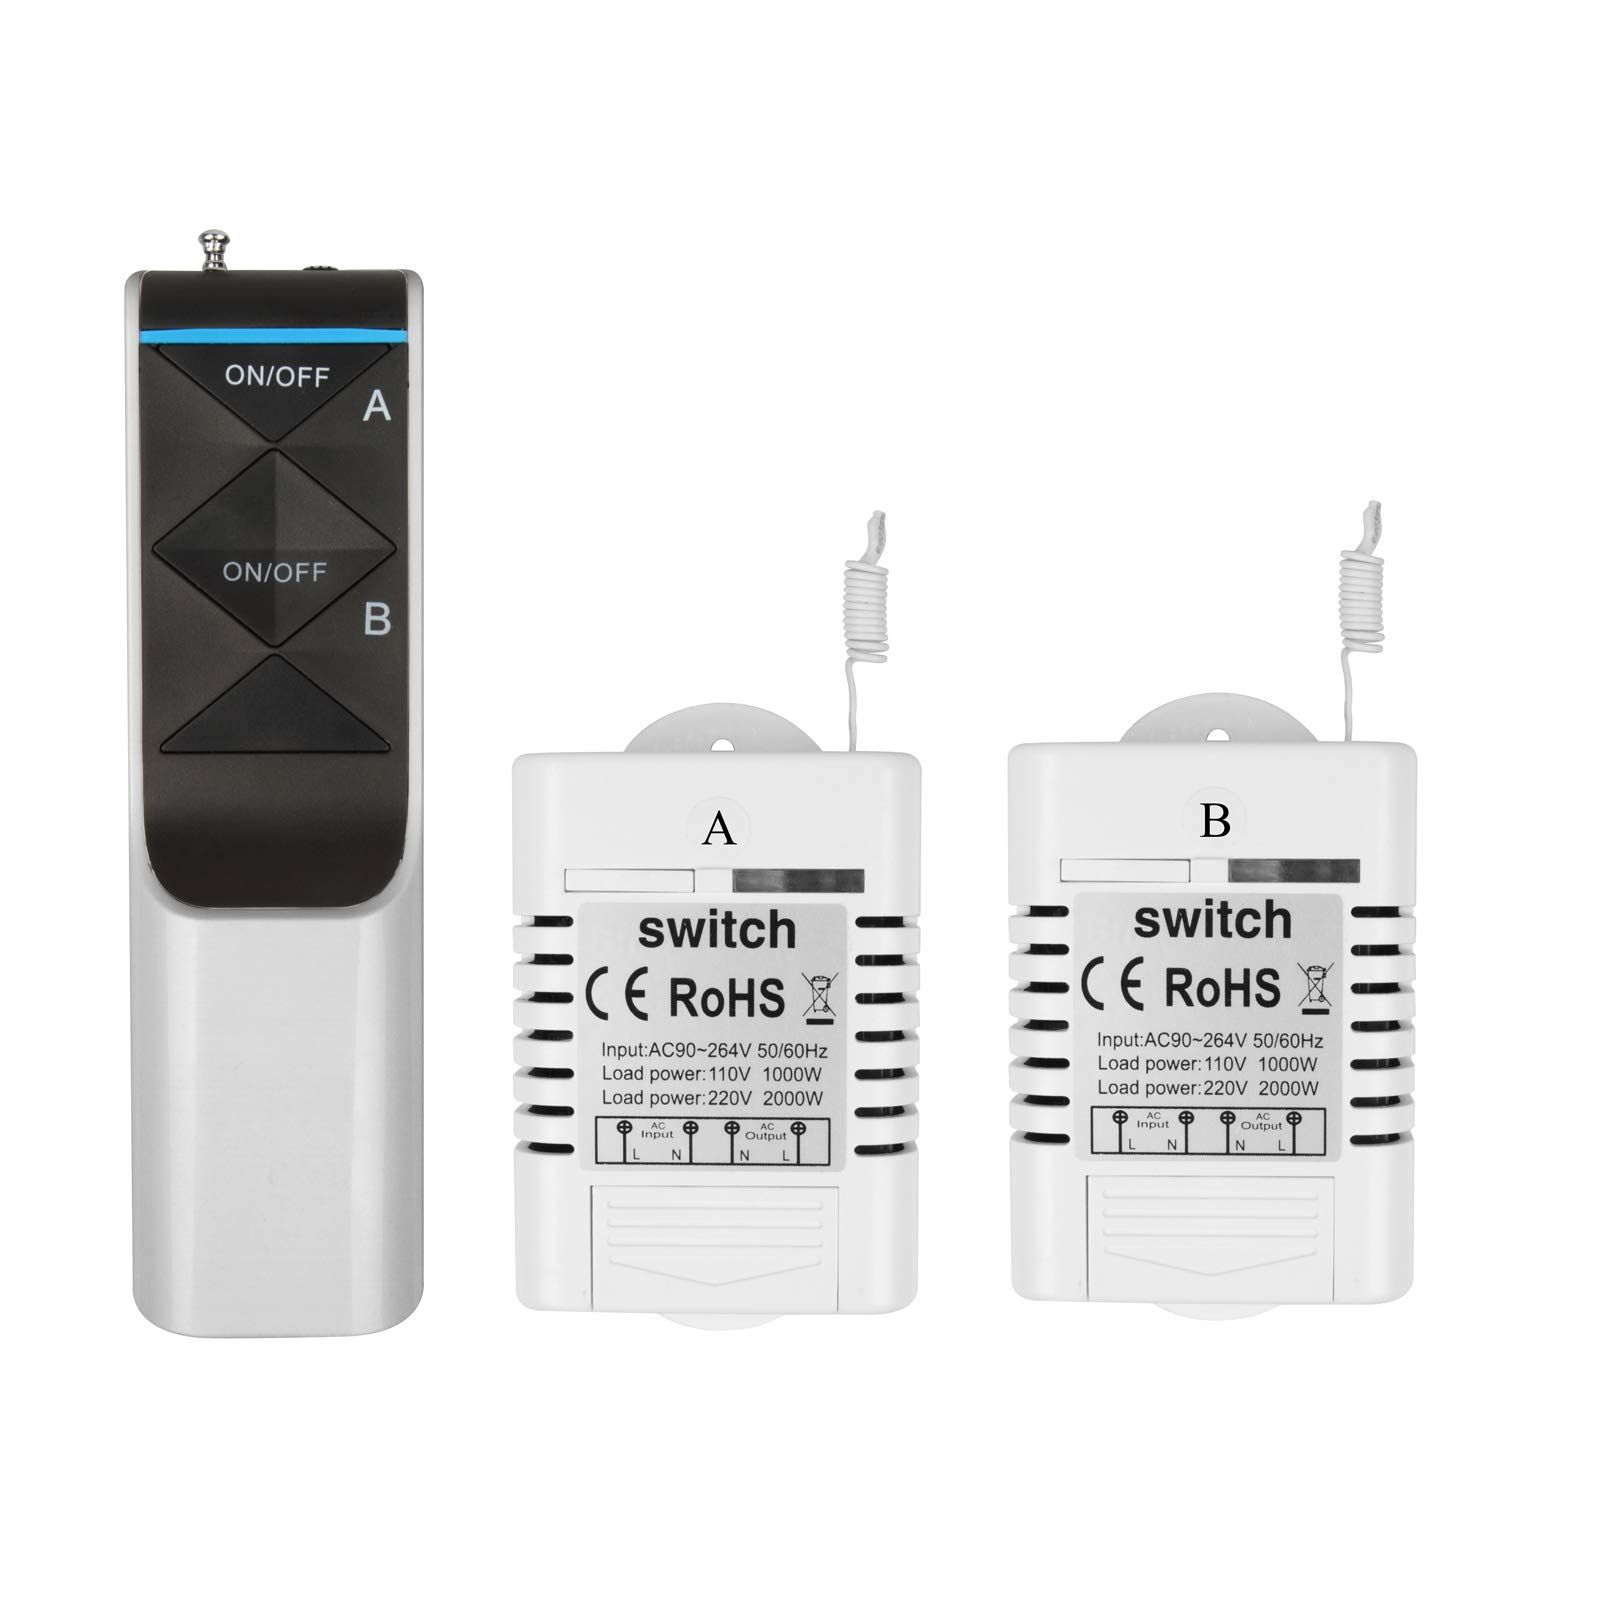 heneng wireless light switch remote controlled no wiring no battery outdoor 1300 ft indoors 230 ft [ 1600 x 1600 Pixel ]